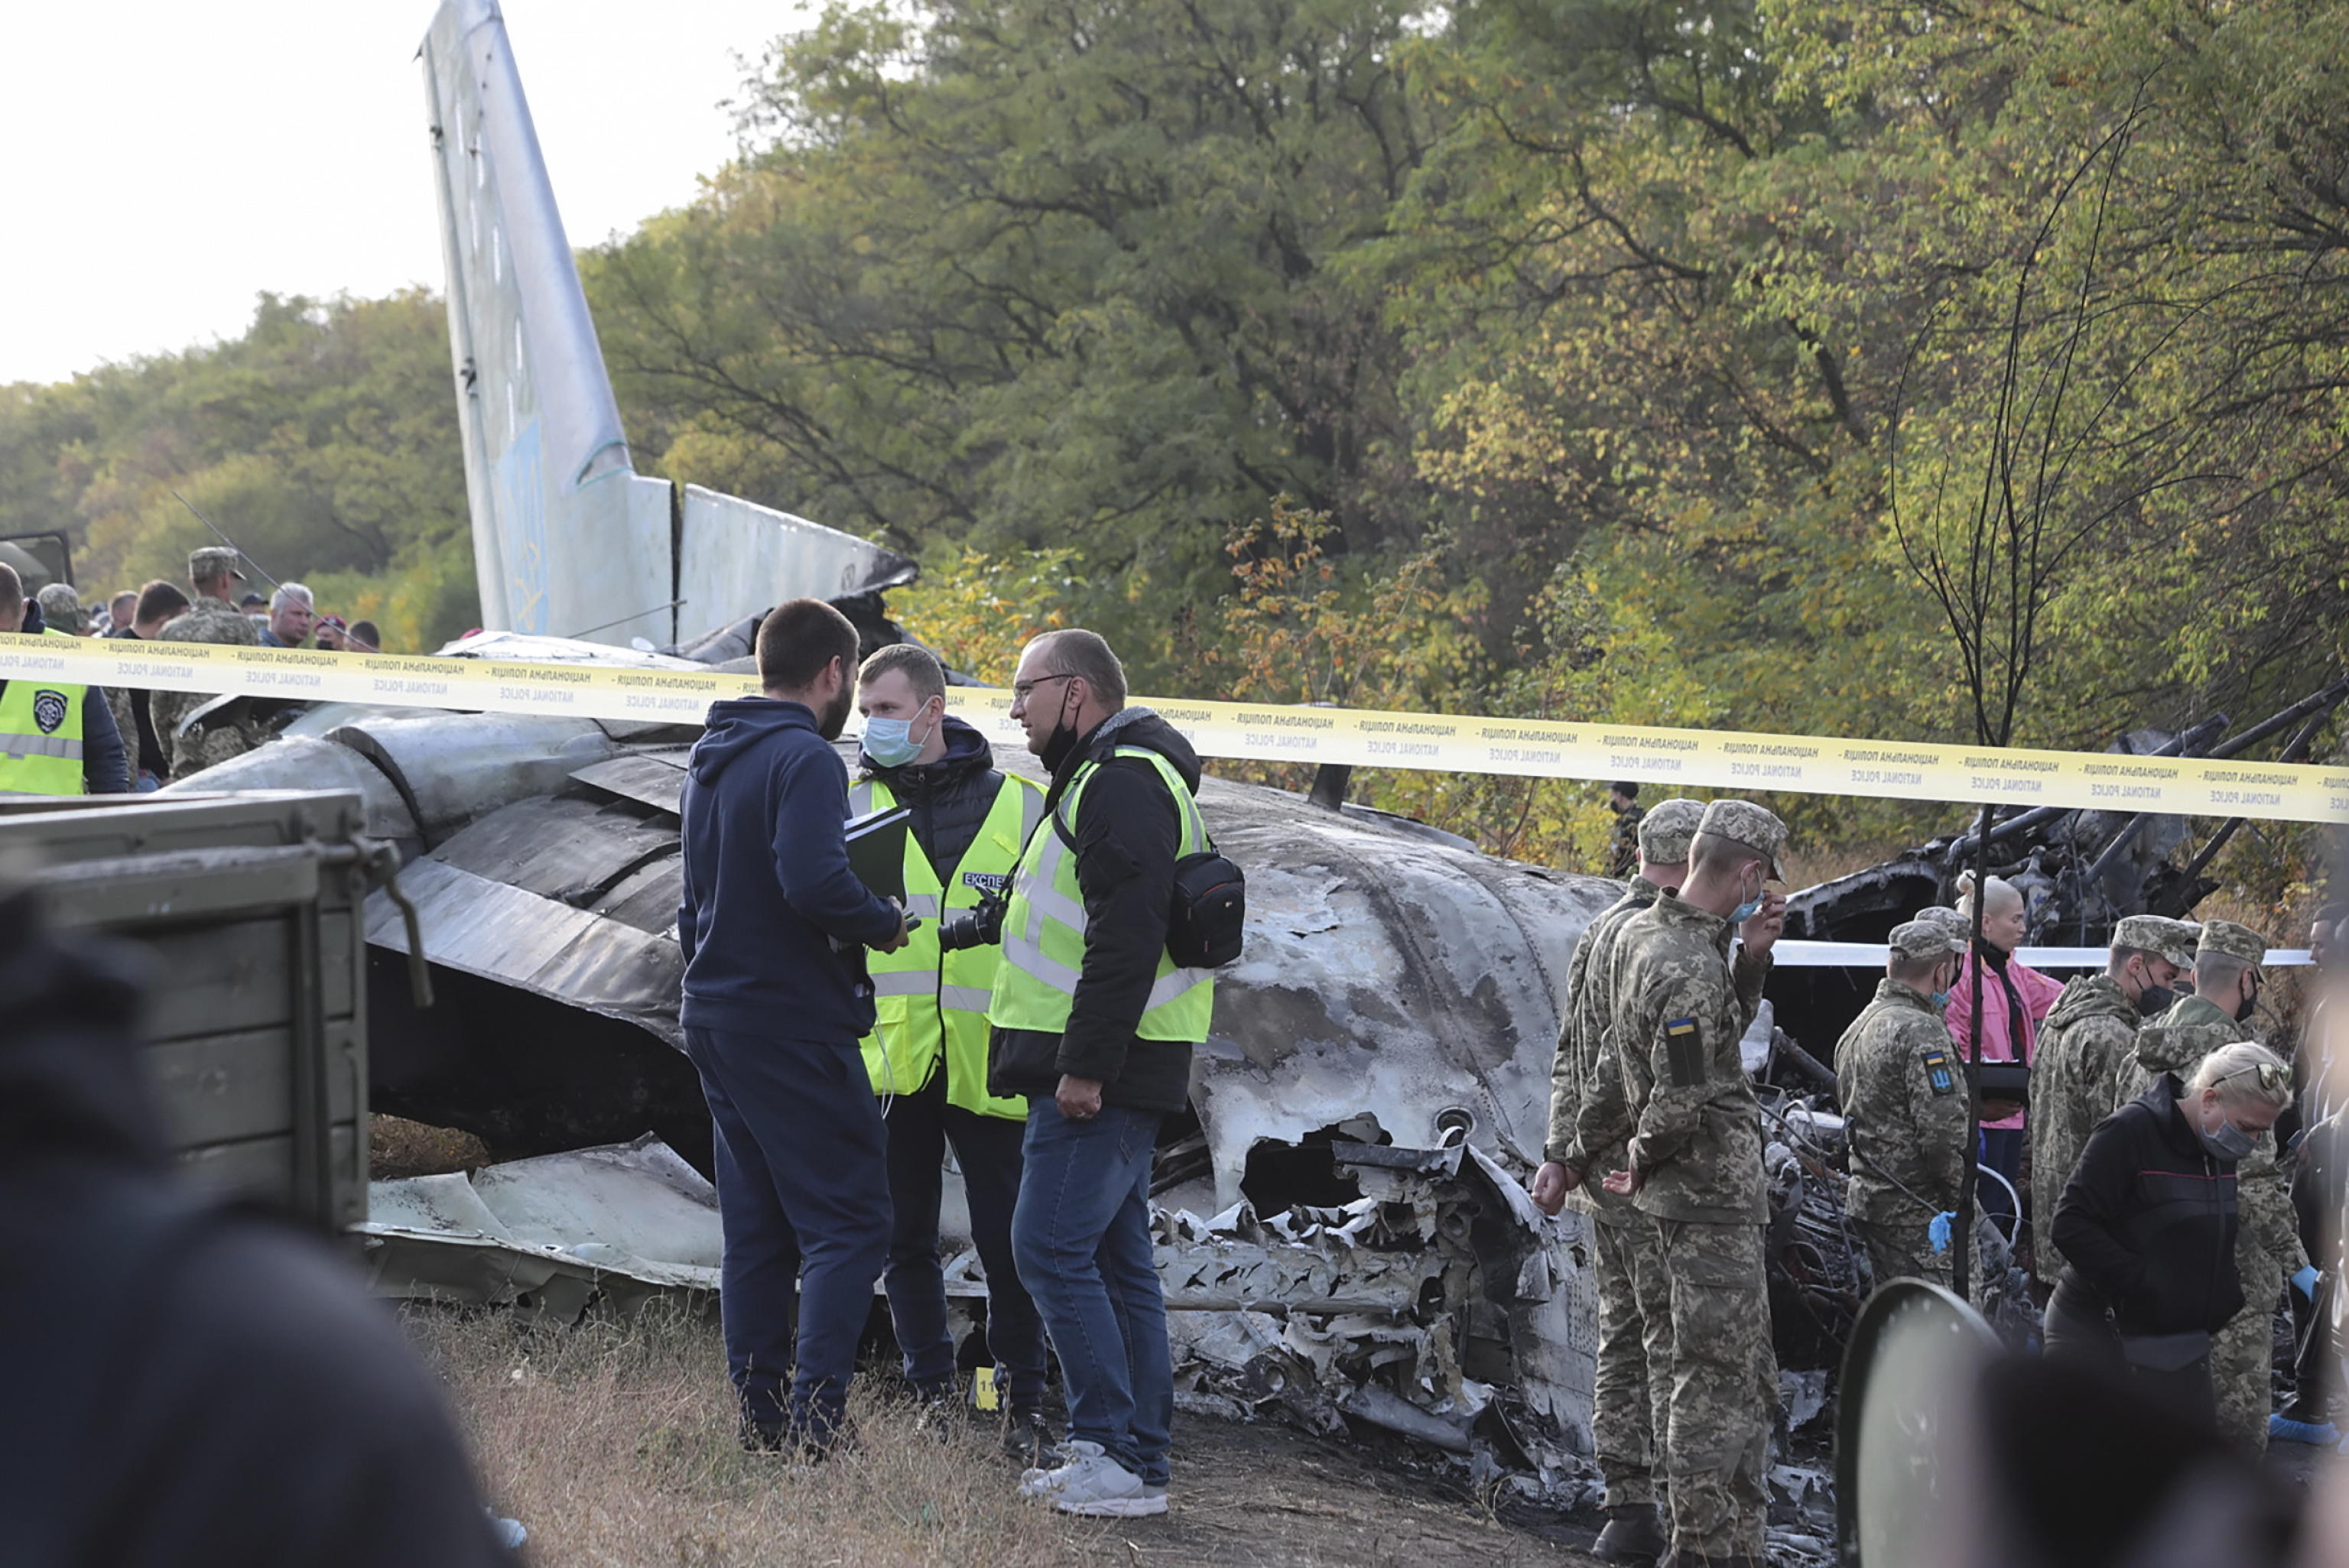 epa08698267 Rescuers inspect the crash site of the An-26 plane near of Chuguev city of Kharkiv's area, Ukraine, 26 September 2020. The An-26 plane of the Ukrainian Air Force crashed while landing at the Chuguev airport in Kharkiv region. Asides from the crew, 21 cadets of the Kharkiv National University of the Air Force were on board because it was a training flight according to preliminary information. A fire broke out during the plane crash. 22 people were killed, two were injured. A total of 28 persons were on board as local media report.  EPA/SERGEY KHRUPOV